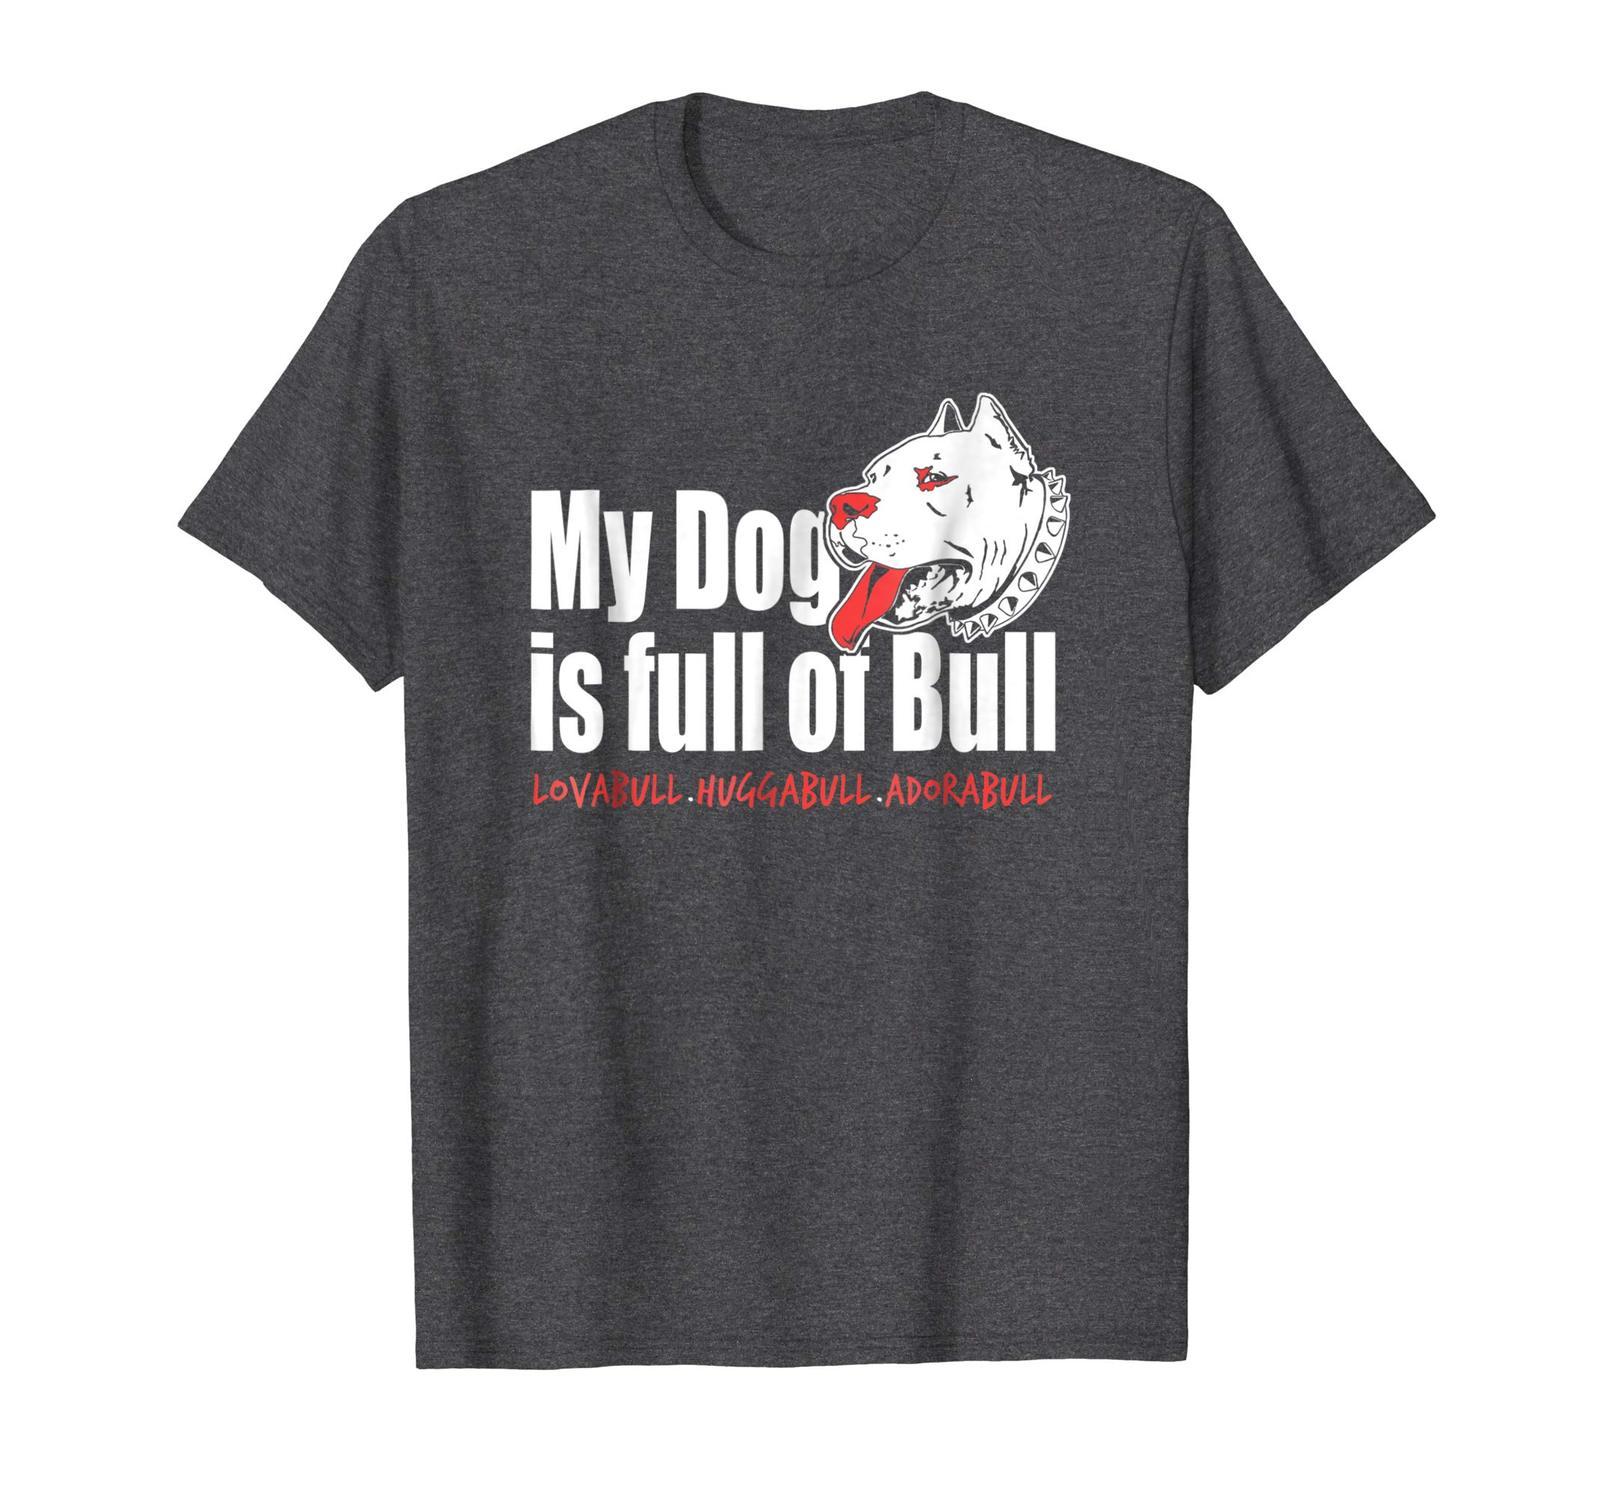 Brother Shirts - My Dog Is Full Of Bull PitBull Love Hug Adore Tee Shirt Men